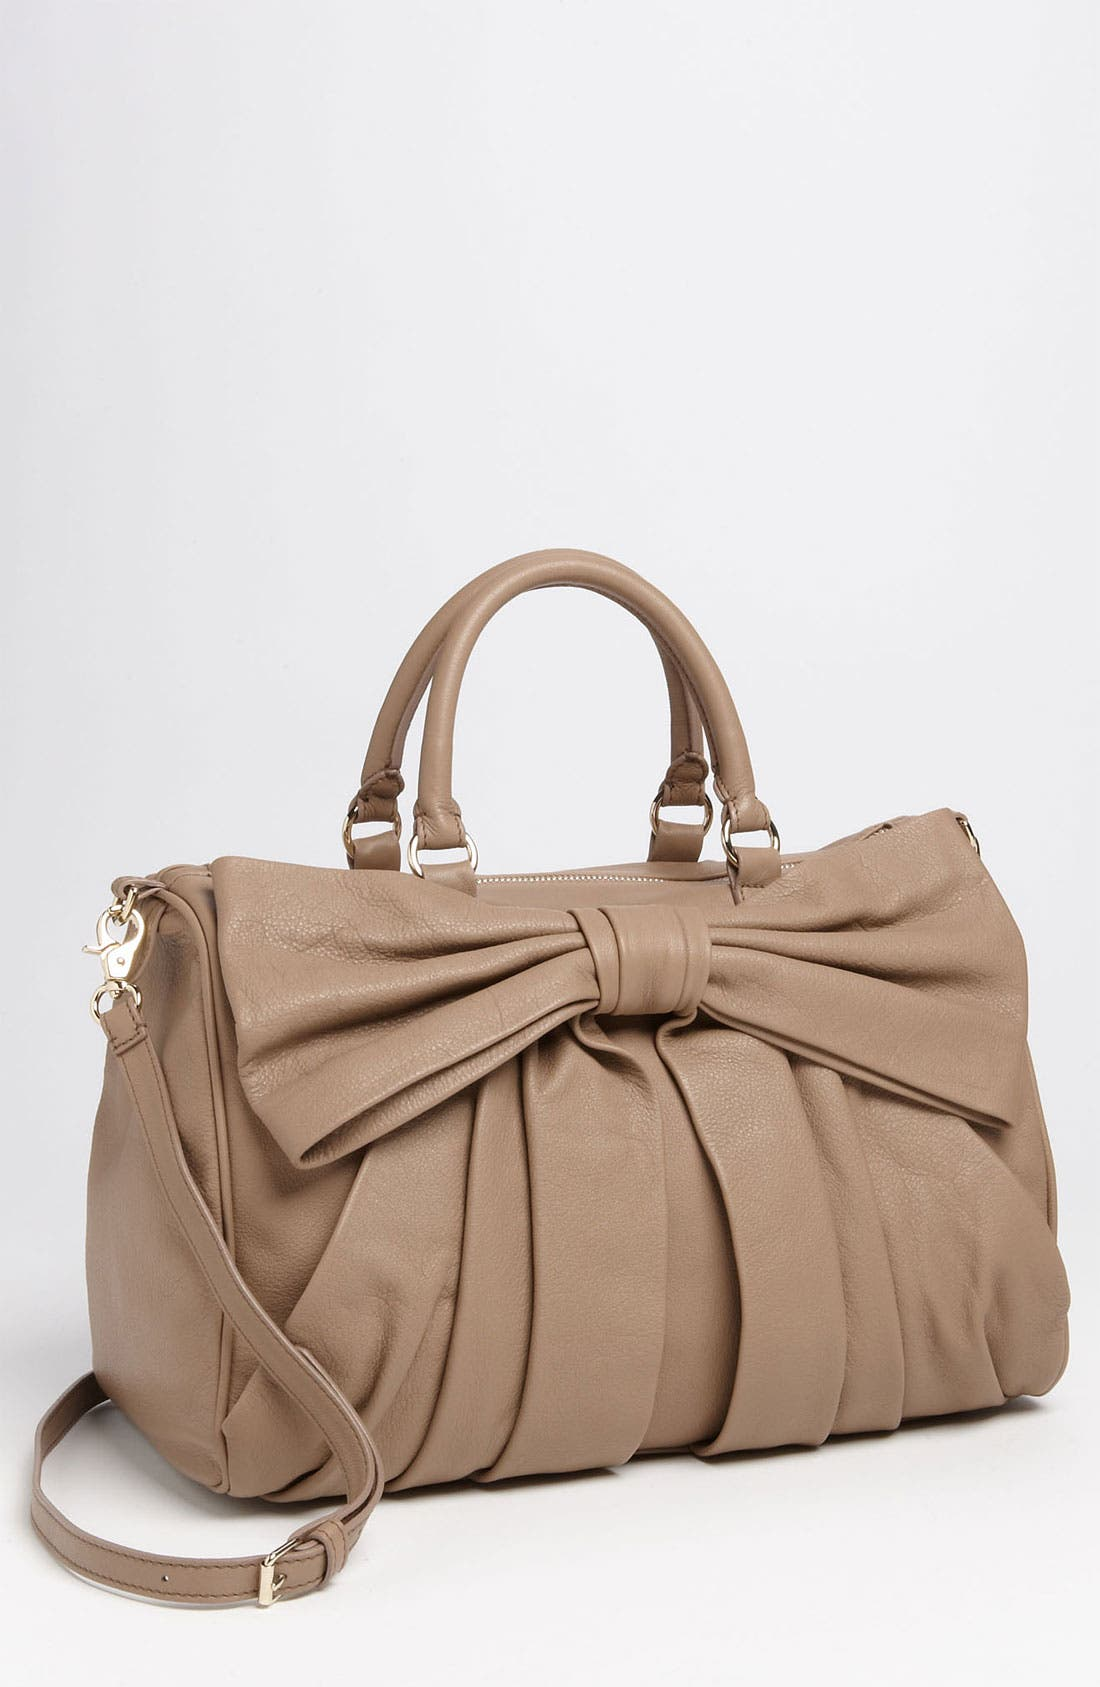 Main Image - RED Valentino 'Bow' Leather Bowler Bag